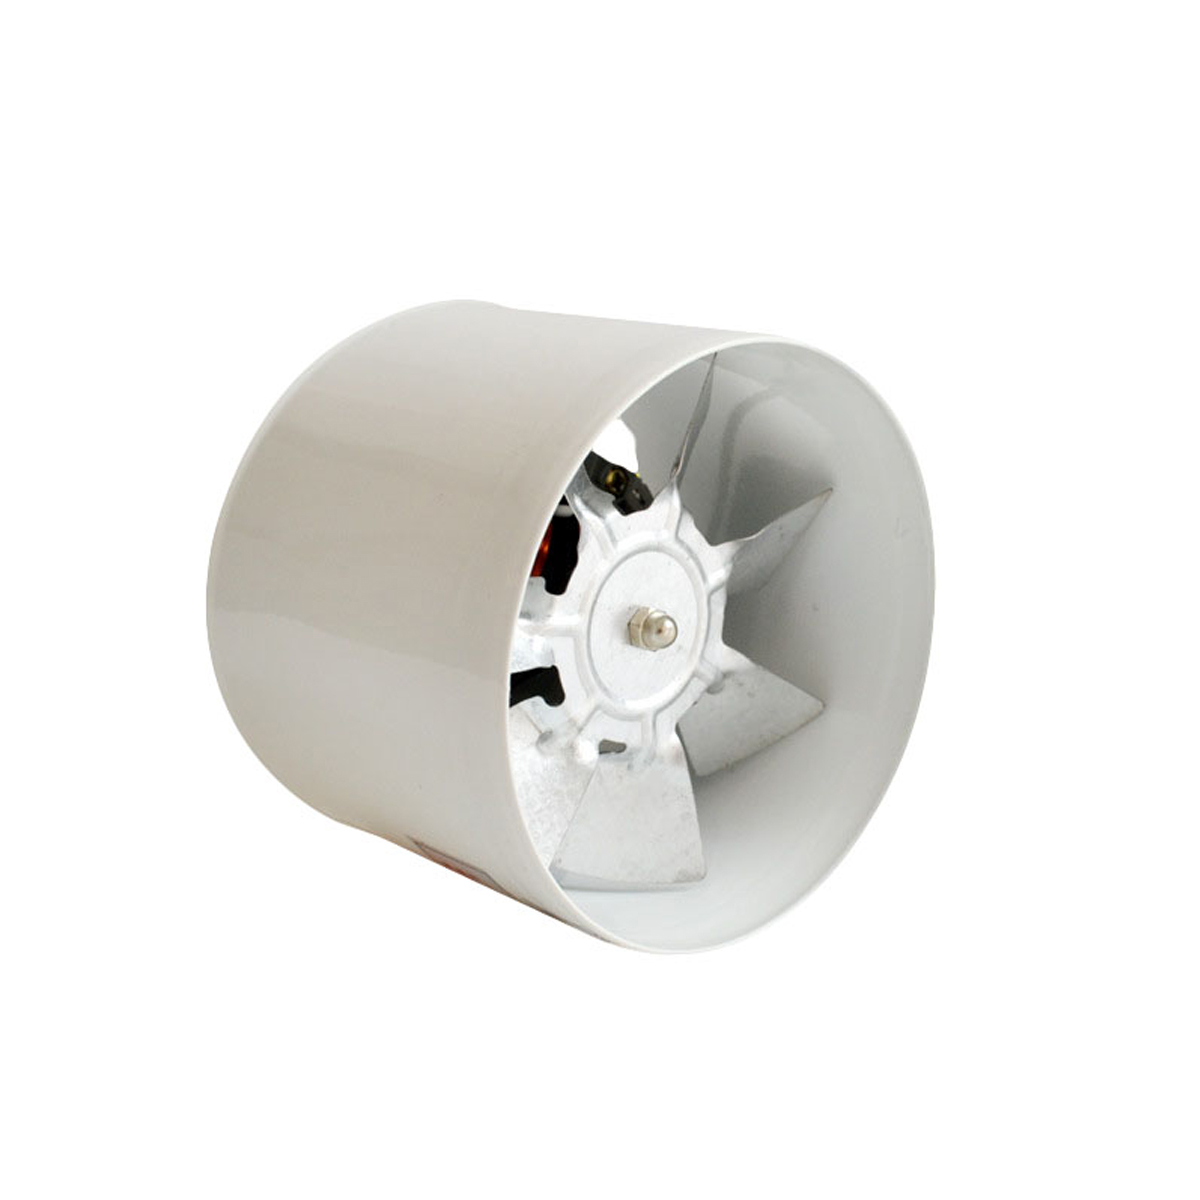 100MM Wall Mount Bathroom Kitchen Pipe Exhaust Fan Ventilation Blower Air Fresh Ejector Fan